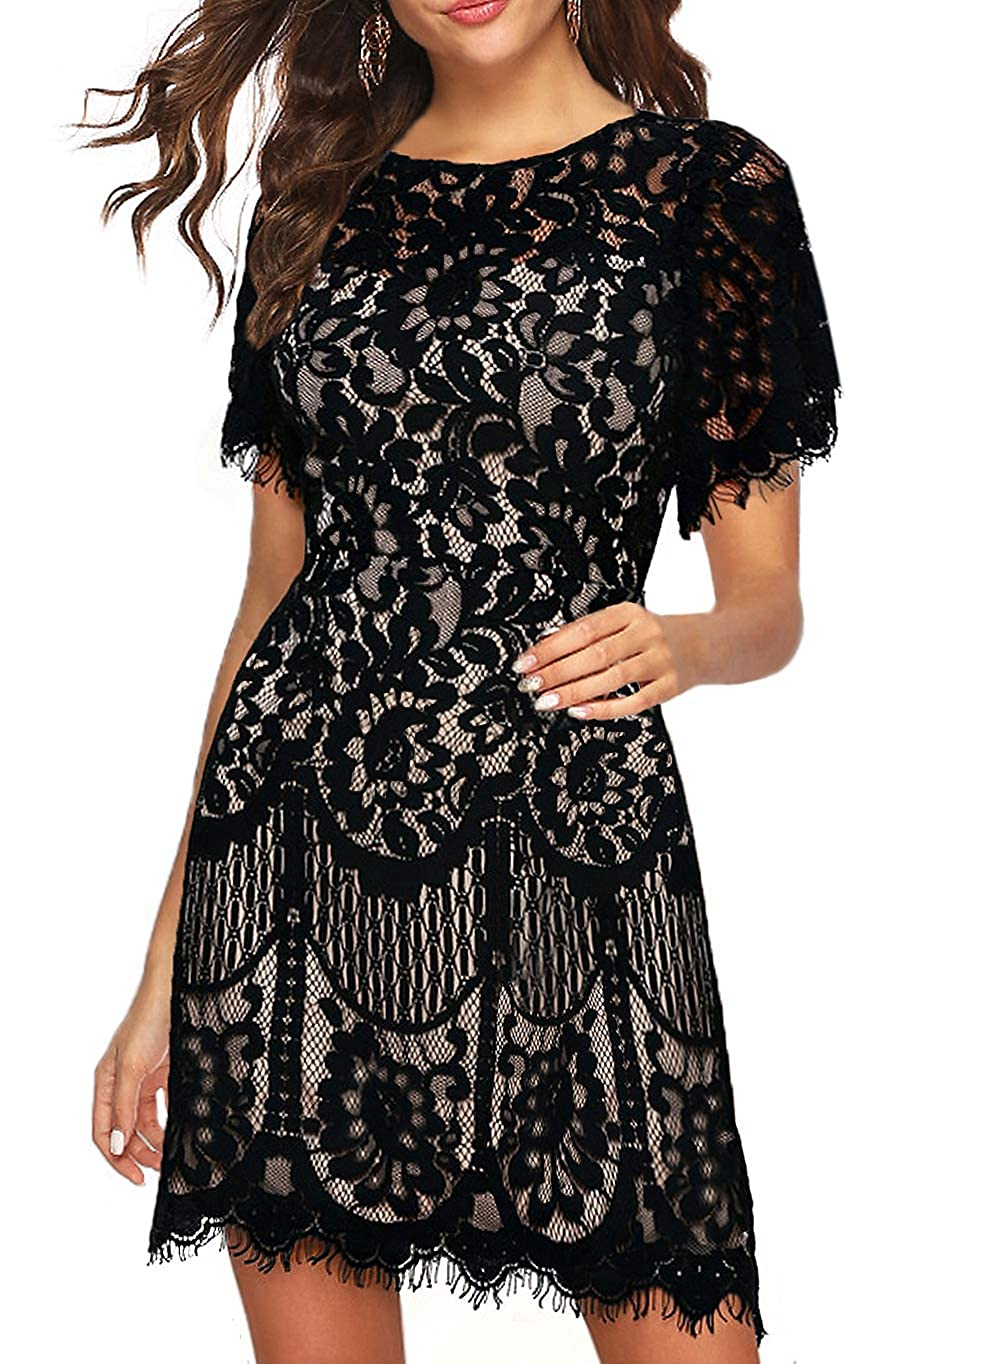 MSLG Womens Elegant Round Neck Short Sleeves V-Back Floral Lace Wedding Cocktail Party A Line Dress 910